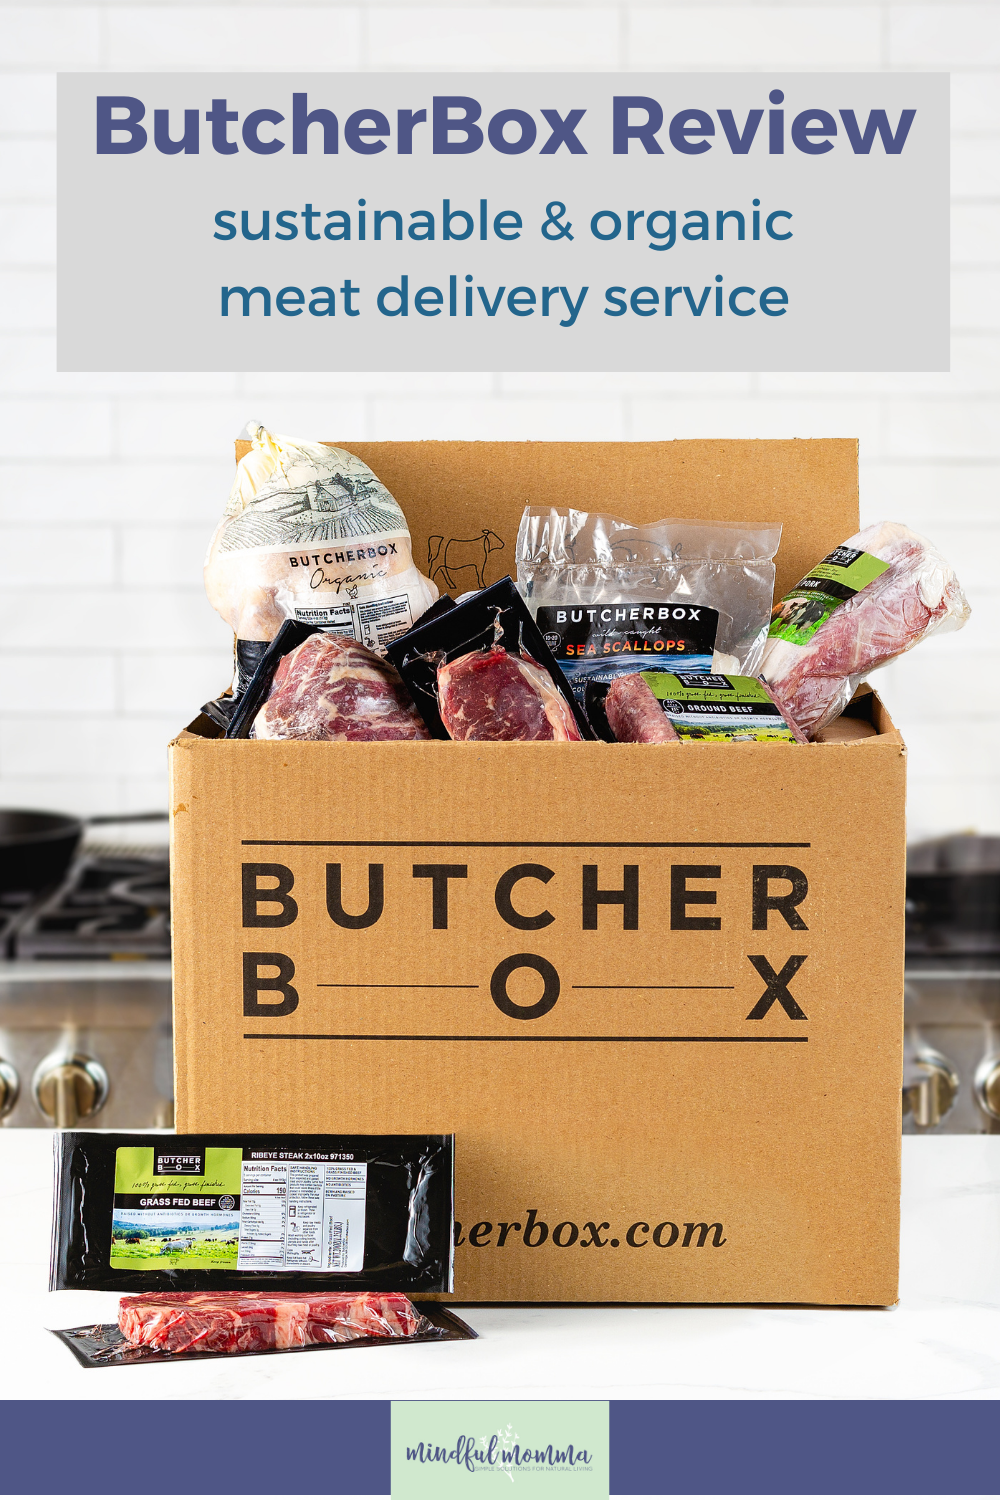 Is ButcherBox worth it? This ButcherBox review will help you decide if this sustainable and organic meat delivery service makes sense for your family.#organic #sustainable #meat #fooddelivery via @MindfulMomma